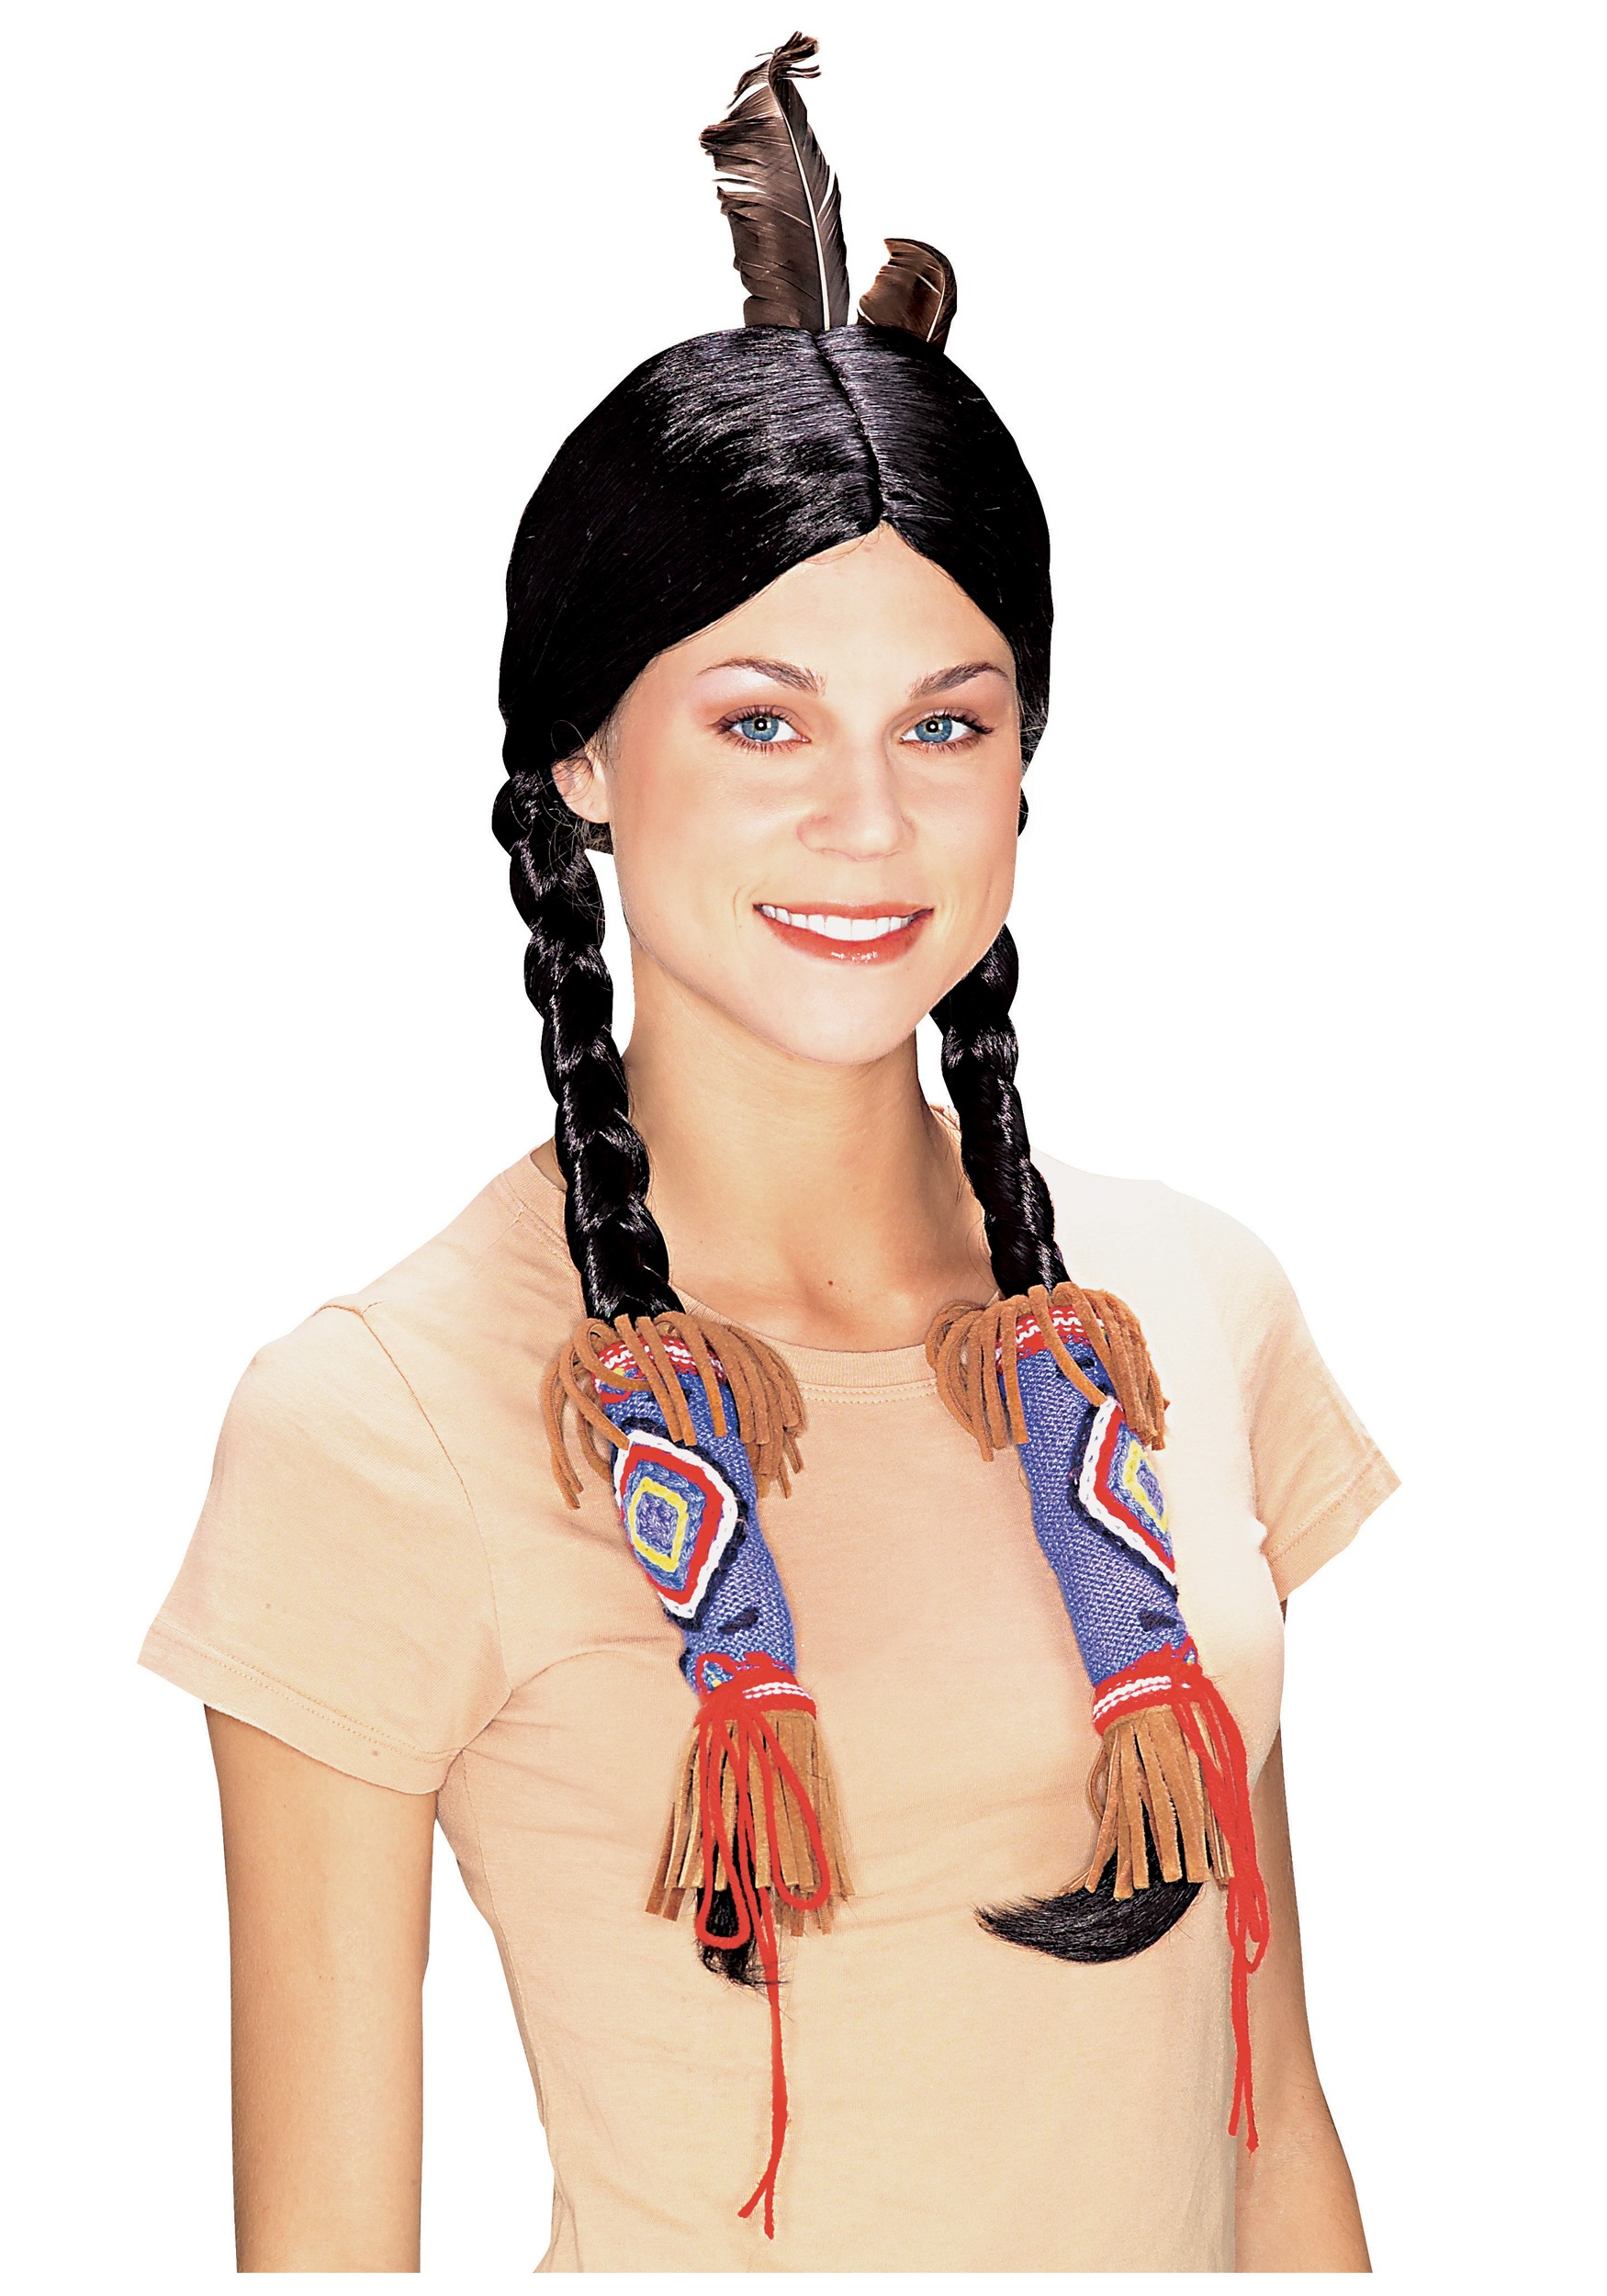 pocahontas halloween costumes for women. Black Bedroom Furniture Sets. Home Design Ideas